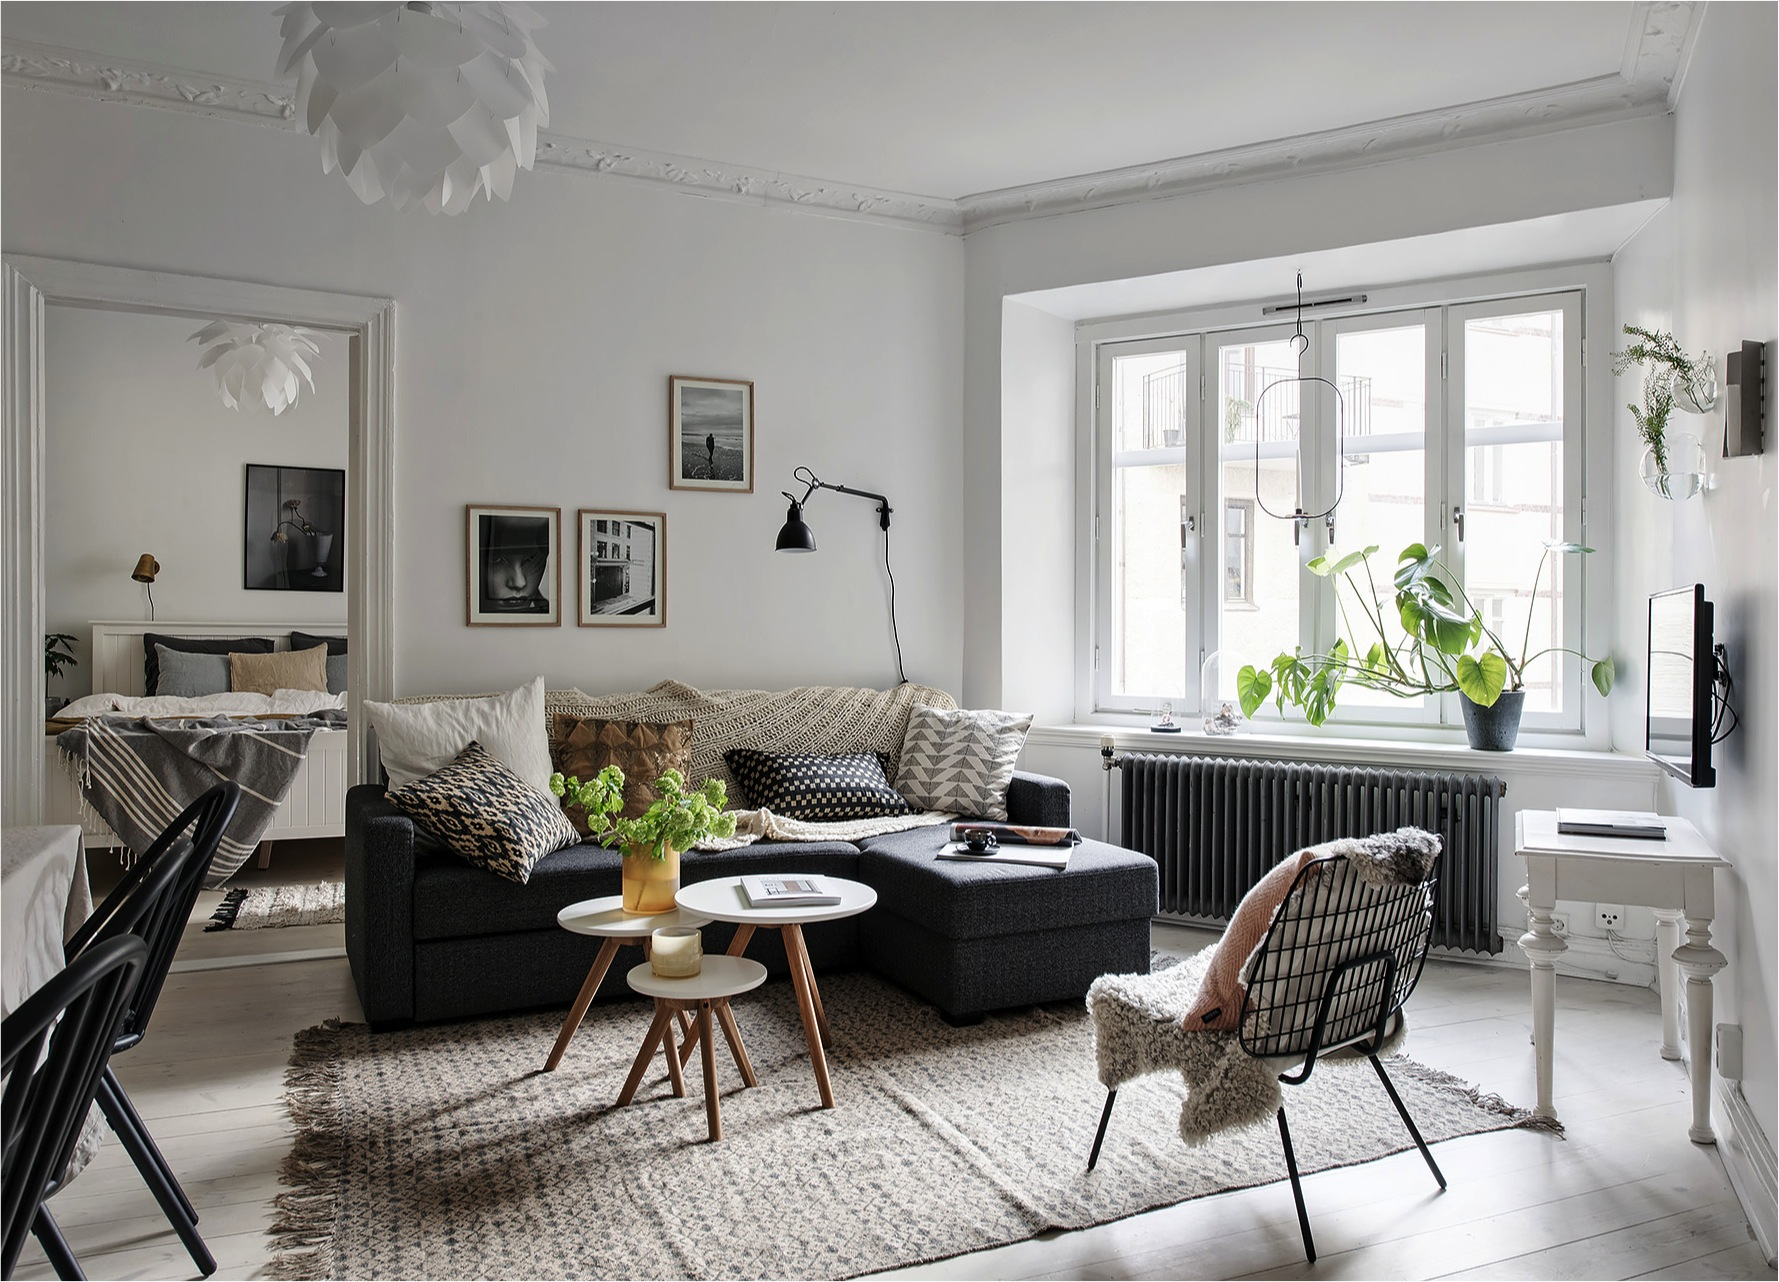 8 clever small living room ideas with scandi style diy home decor your diy family for How to set small living room